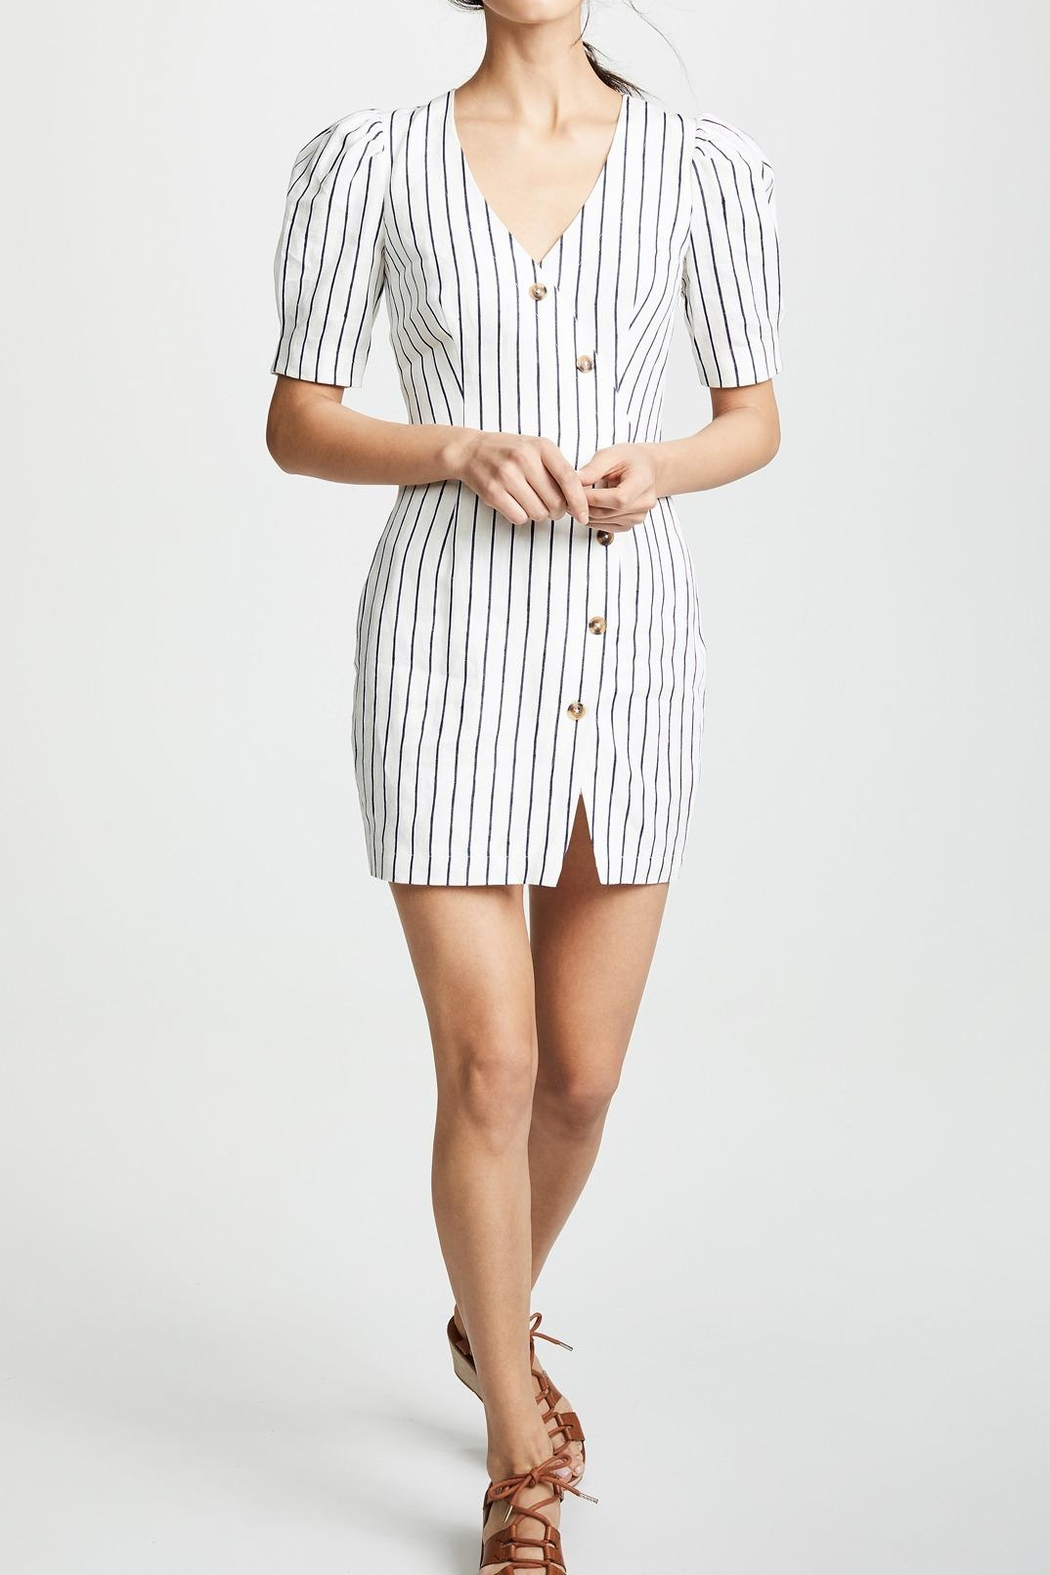 Saylor Pauline Striped Dress - Back Cropped Image